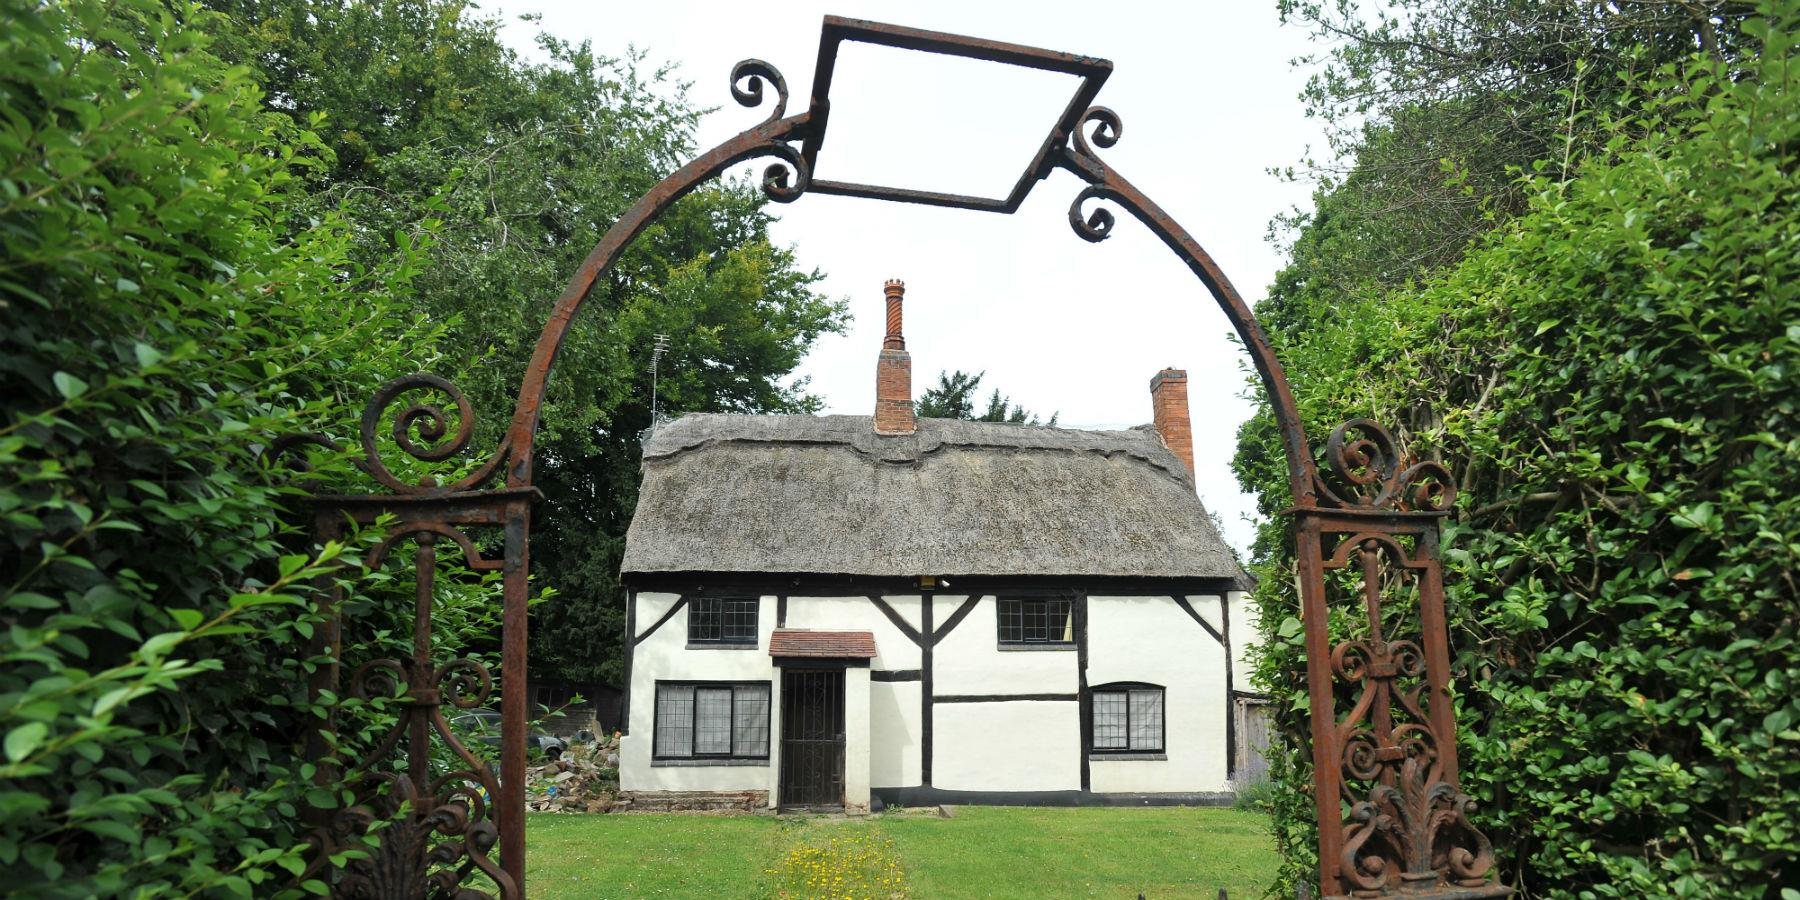 Visit Humberstone on Leicester's outskirts and see the legend-inspiring Humber stone along with tranquil gardens.